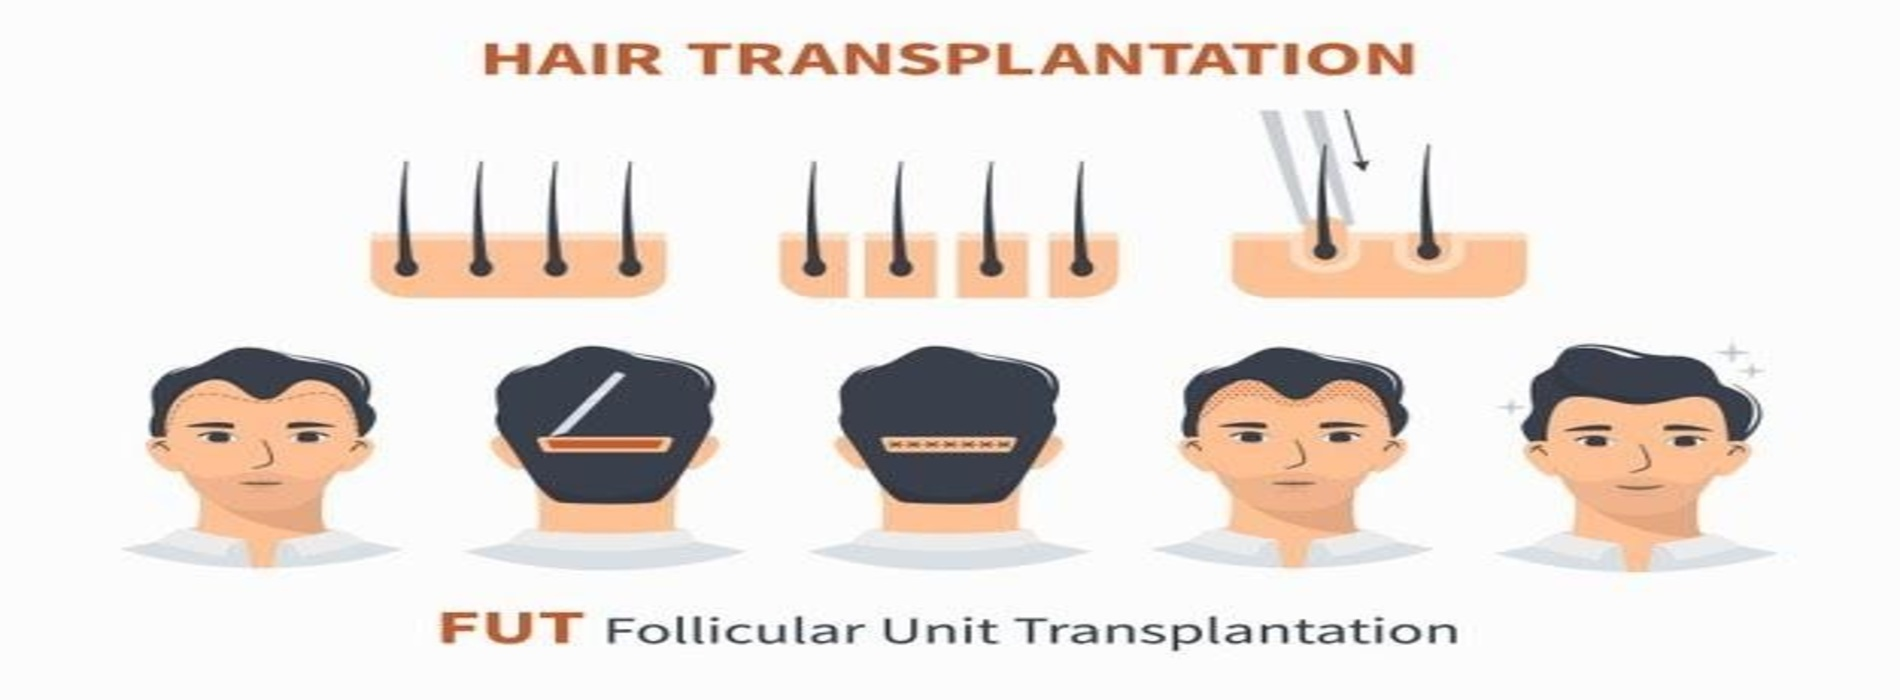 In Jaipur, How Much Does a Hair Transplant Cost?